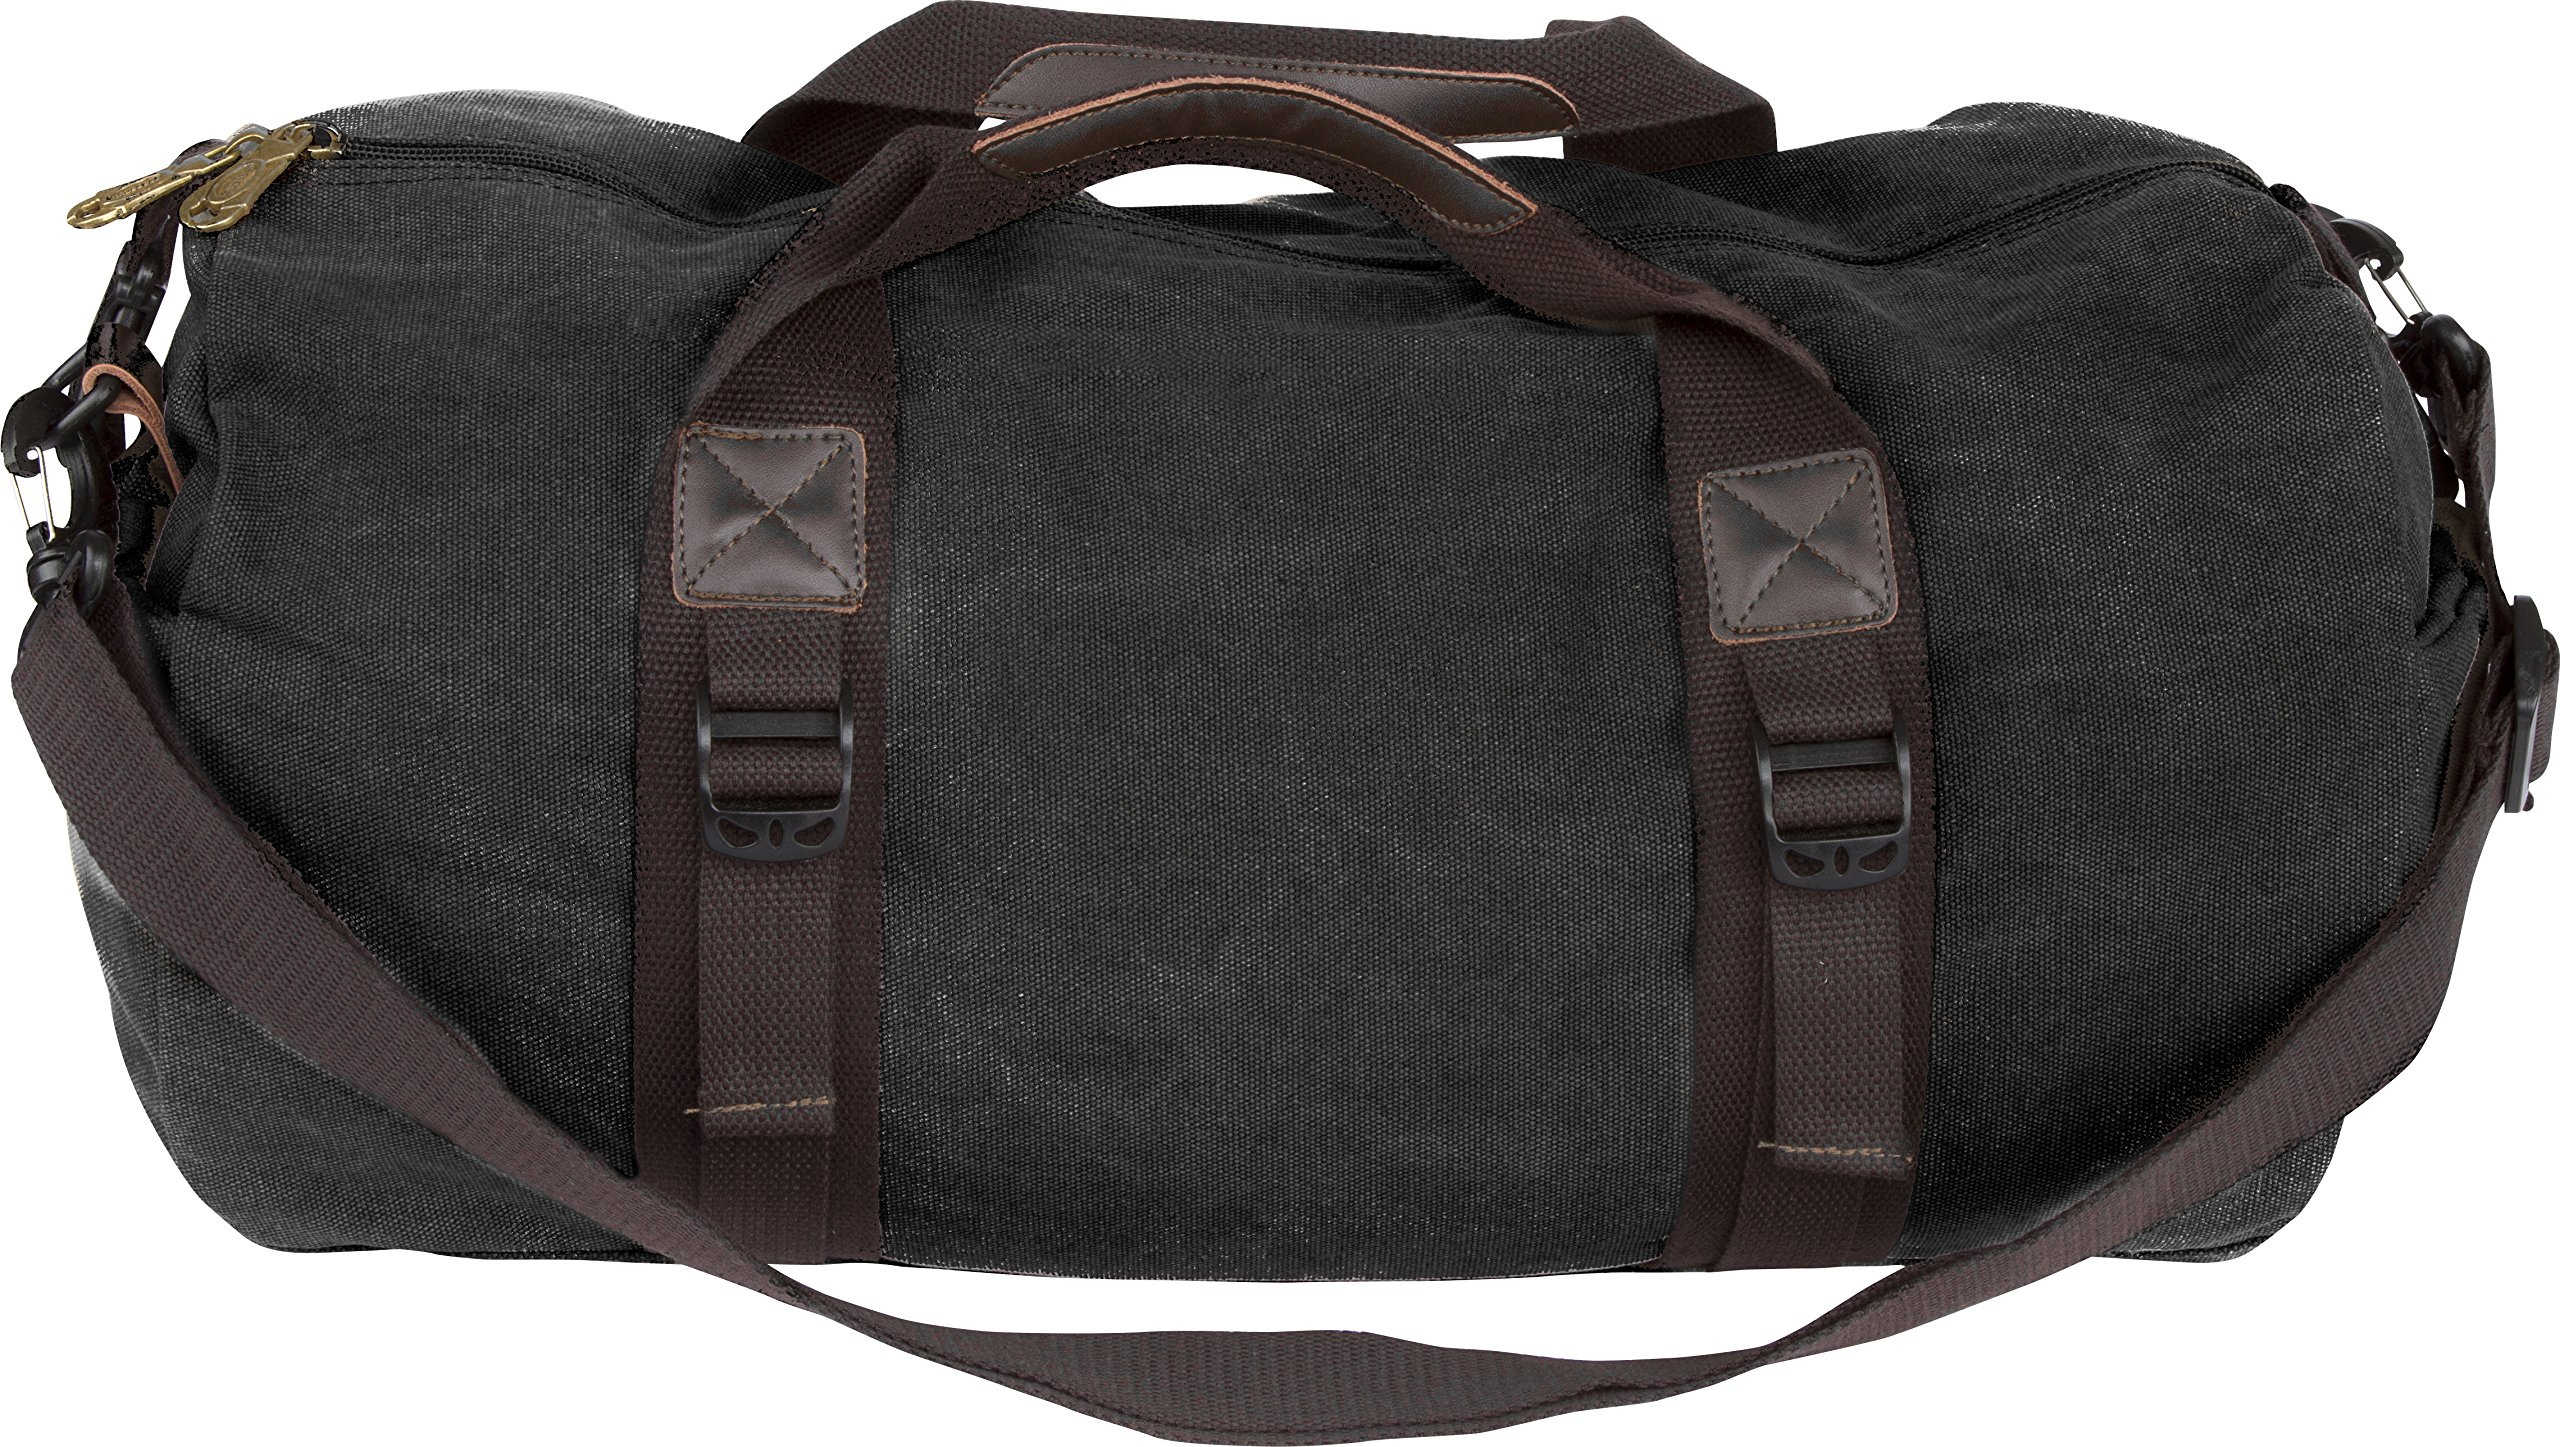 Unisex Canvas Travel Duffel Bag Overnight Weekend Bag (18'' Length, Style #1 Black)